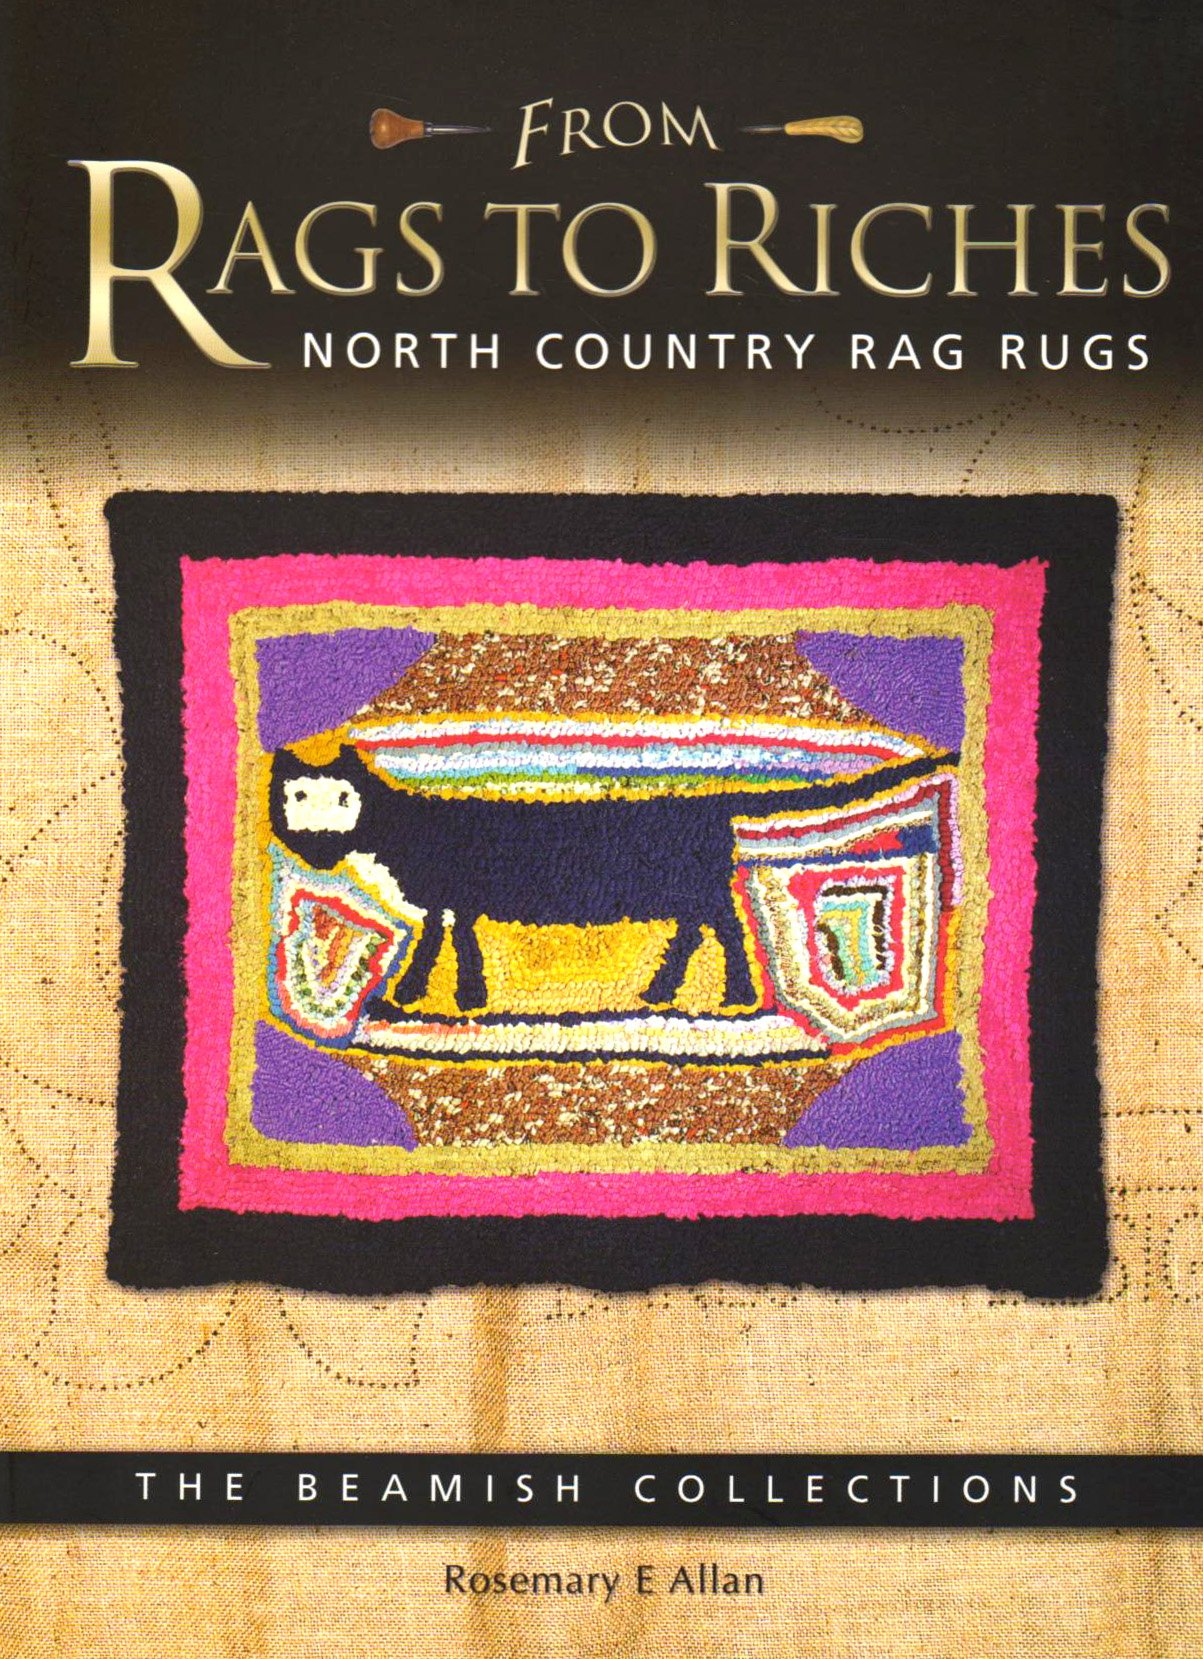 from-rags-to-riches-north-country-rag-rugs